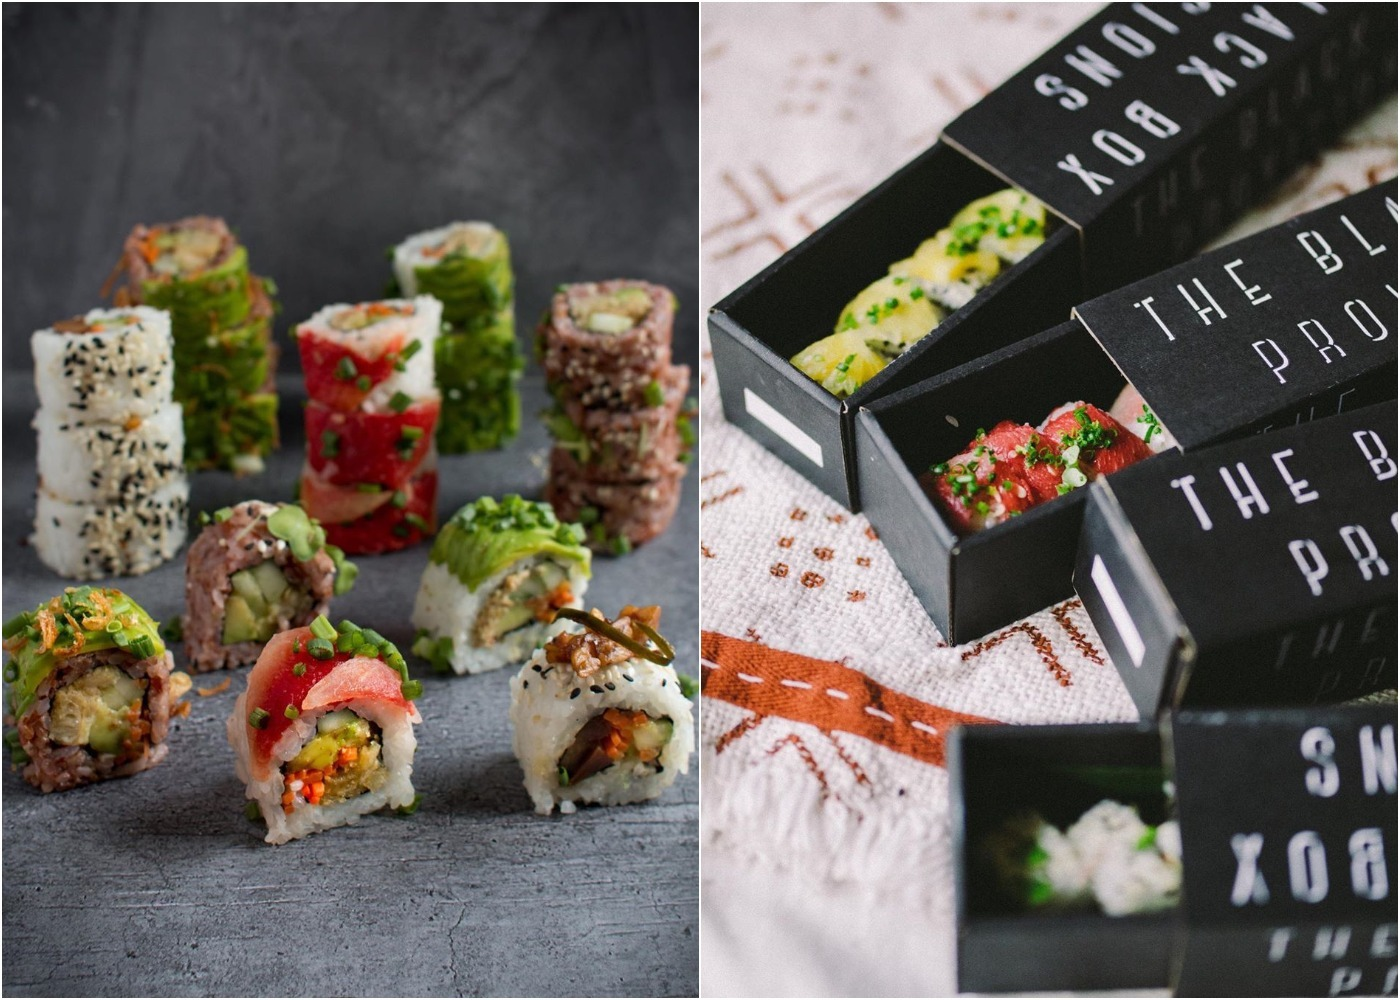 The Black Box Provisions - best new sushi restaurant in Bali